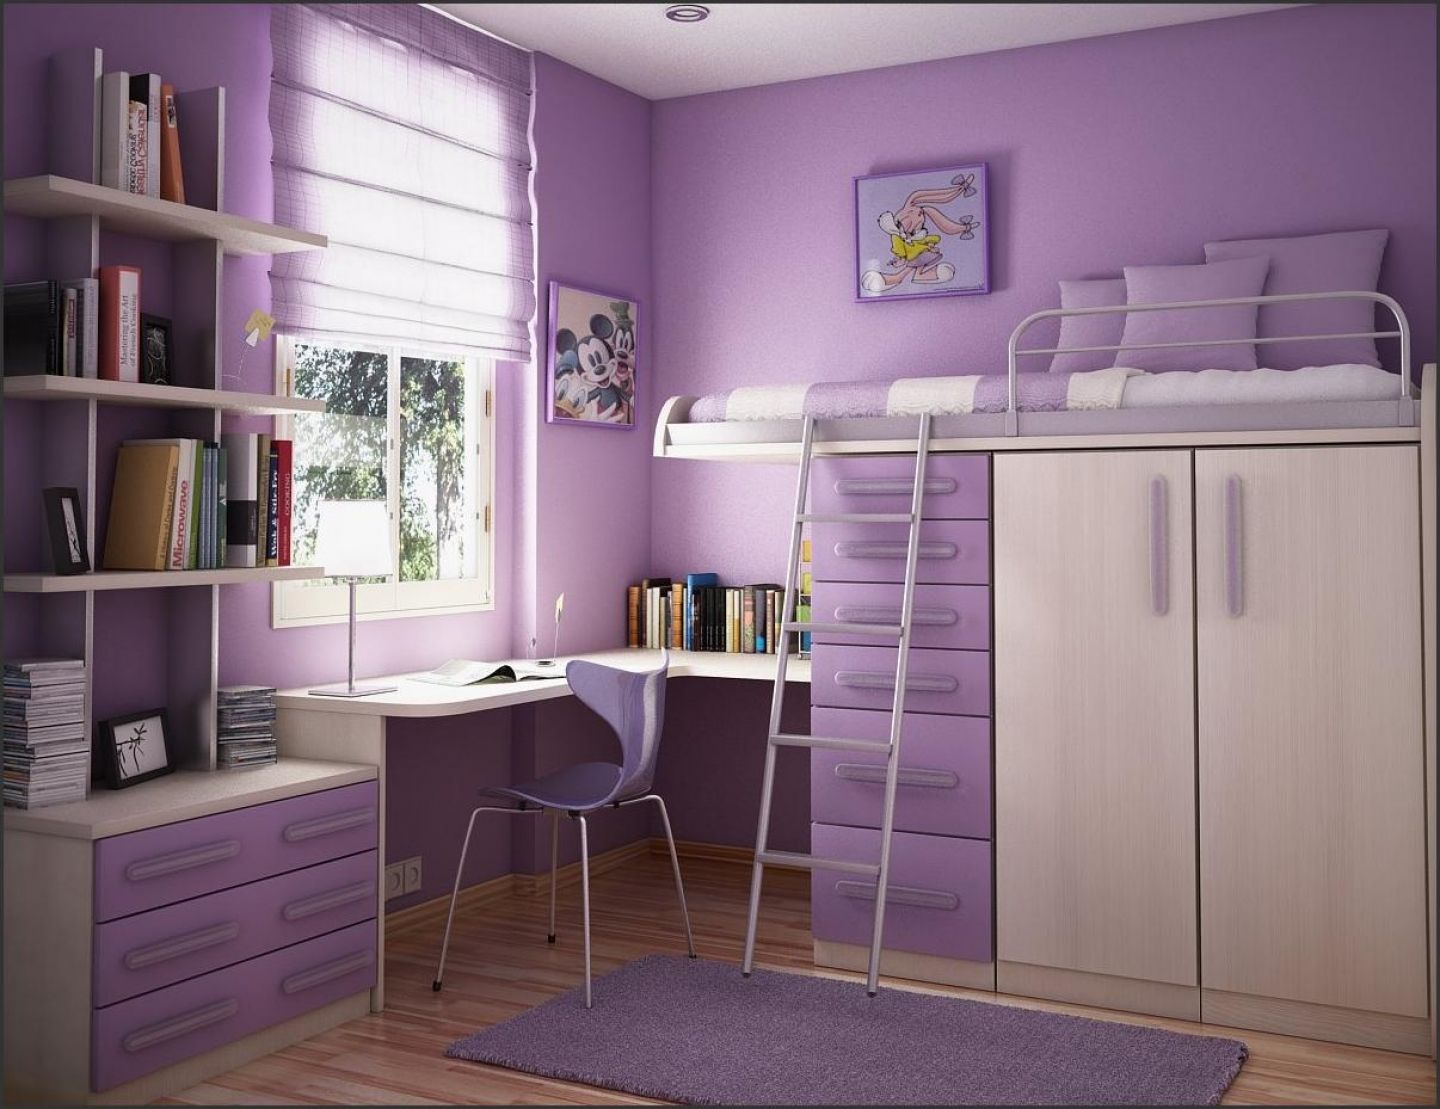 teen girl bedroom decorating ideas 06 13 1403